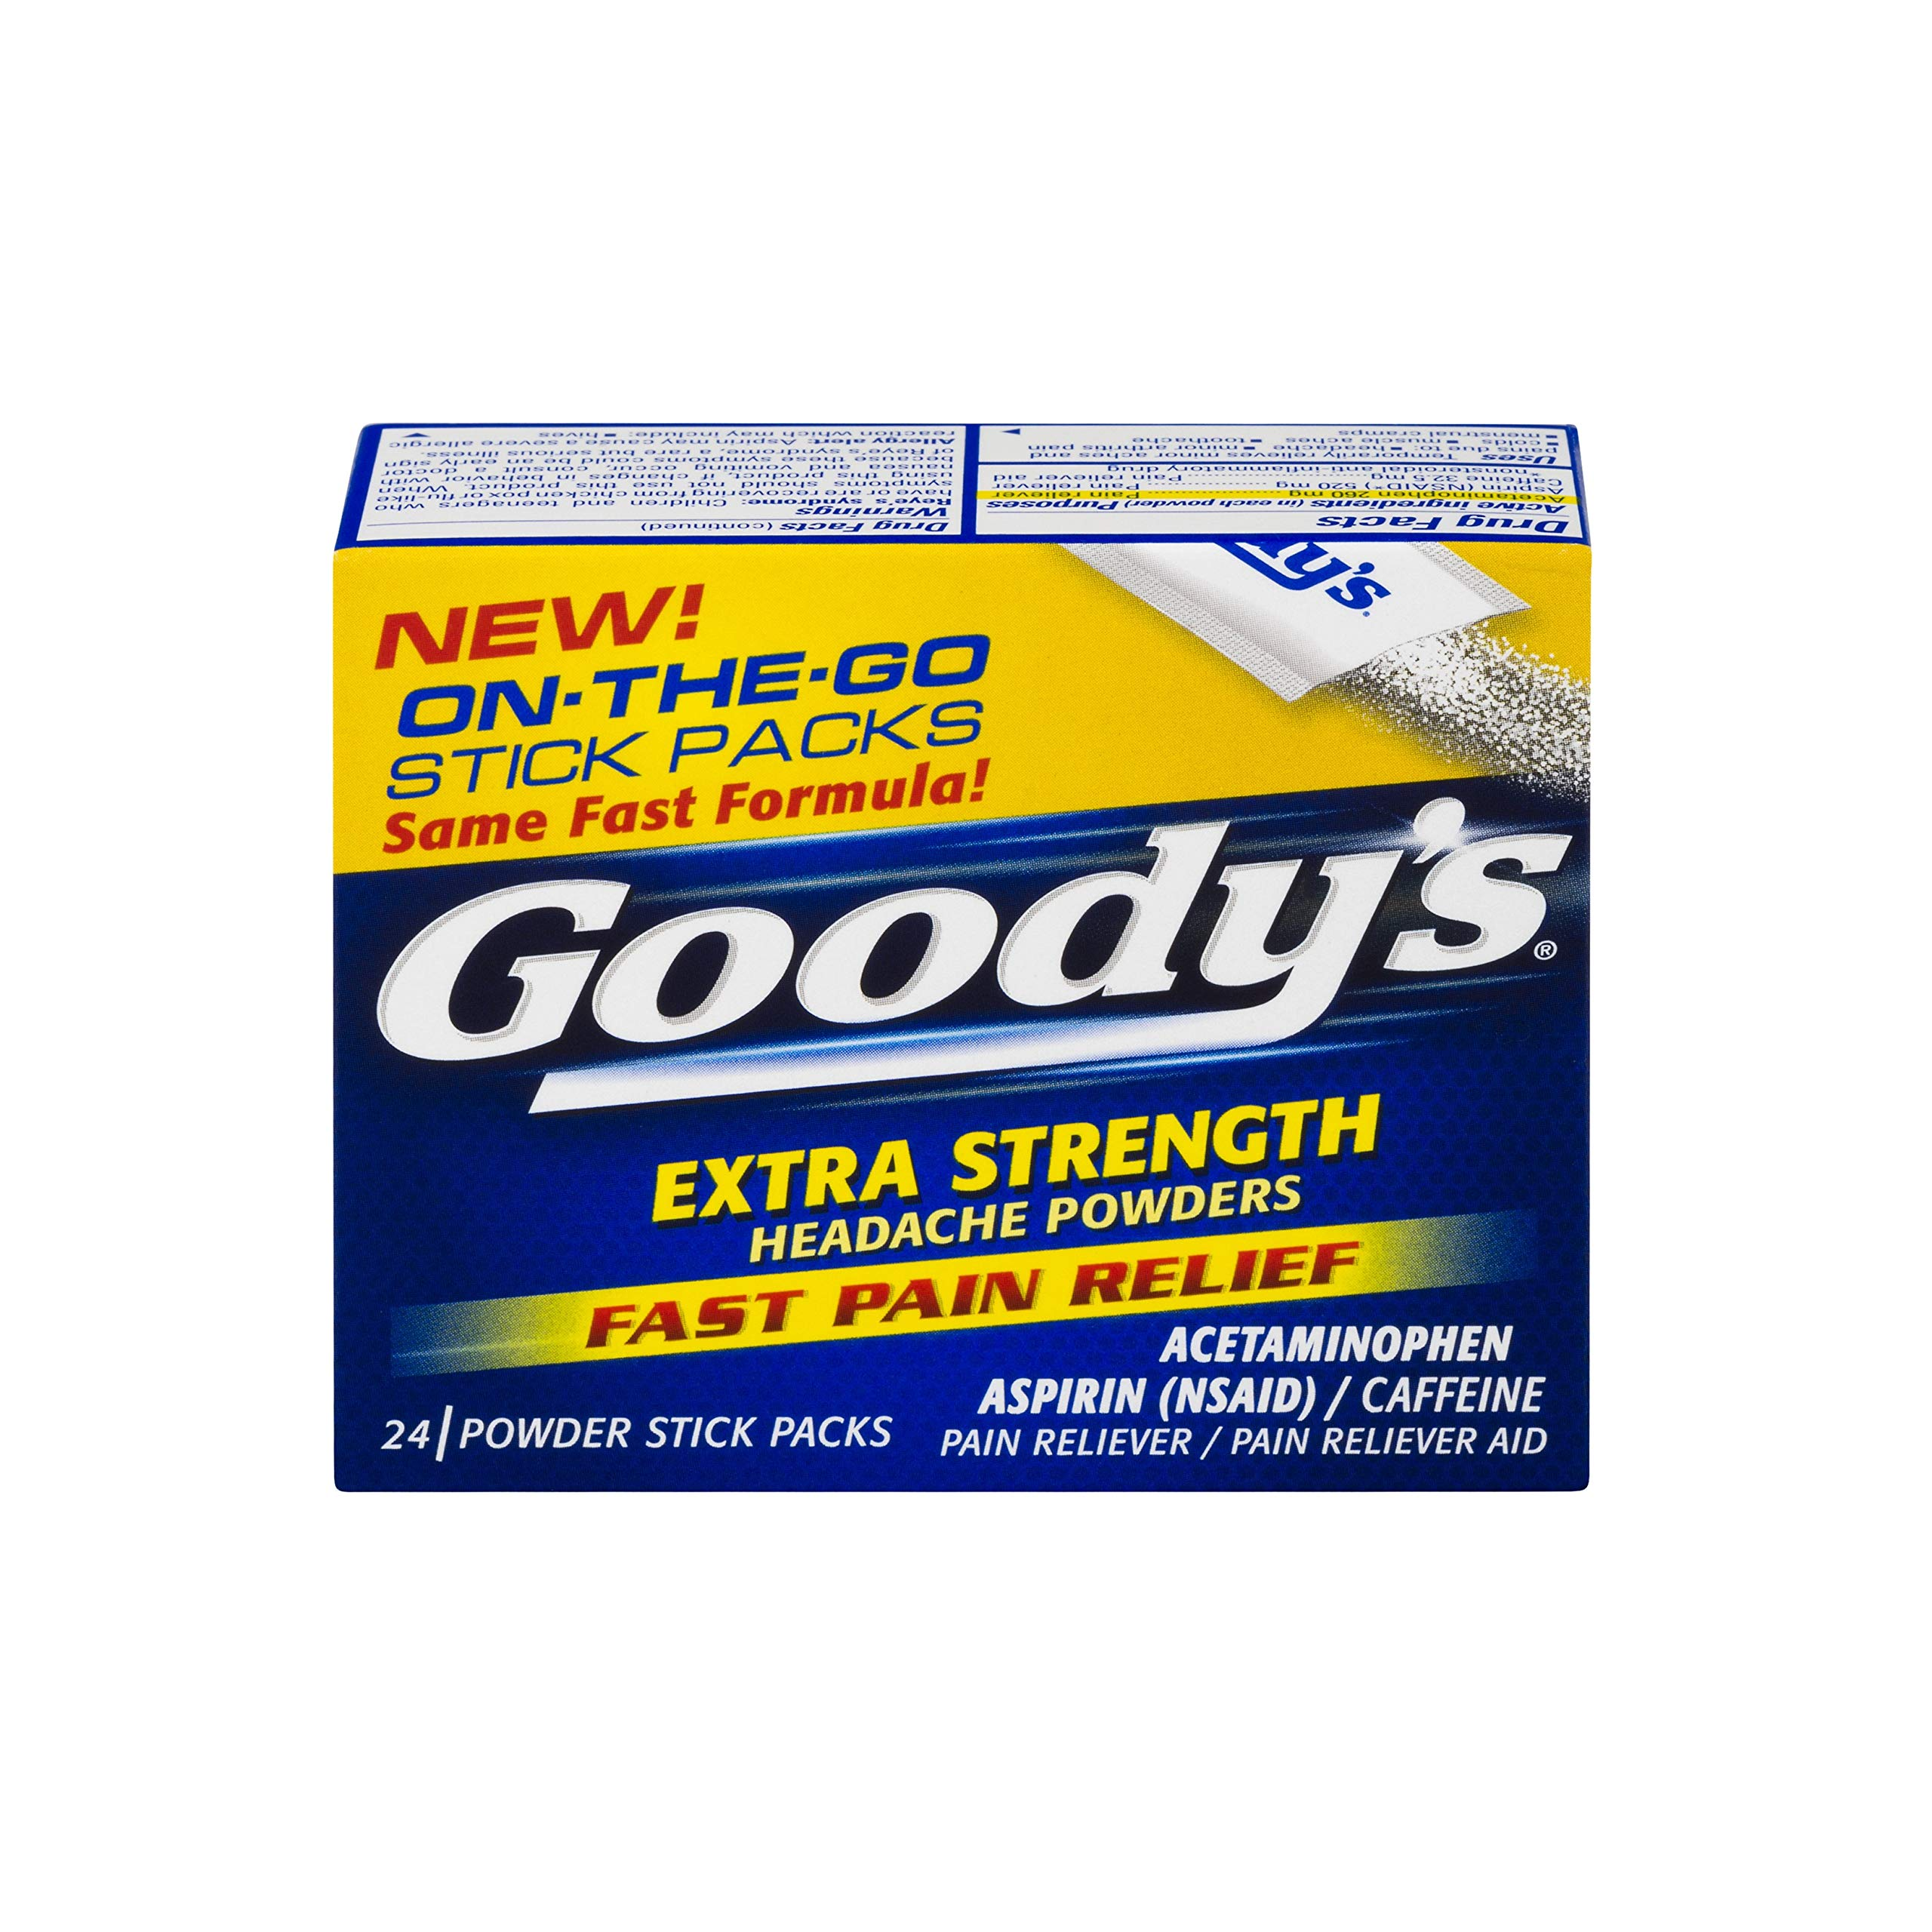 Goody's Headache Powders, Extra Strength, 50-Count Boxes (Pack of 4) by Goody's